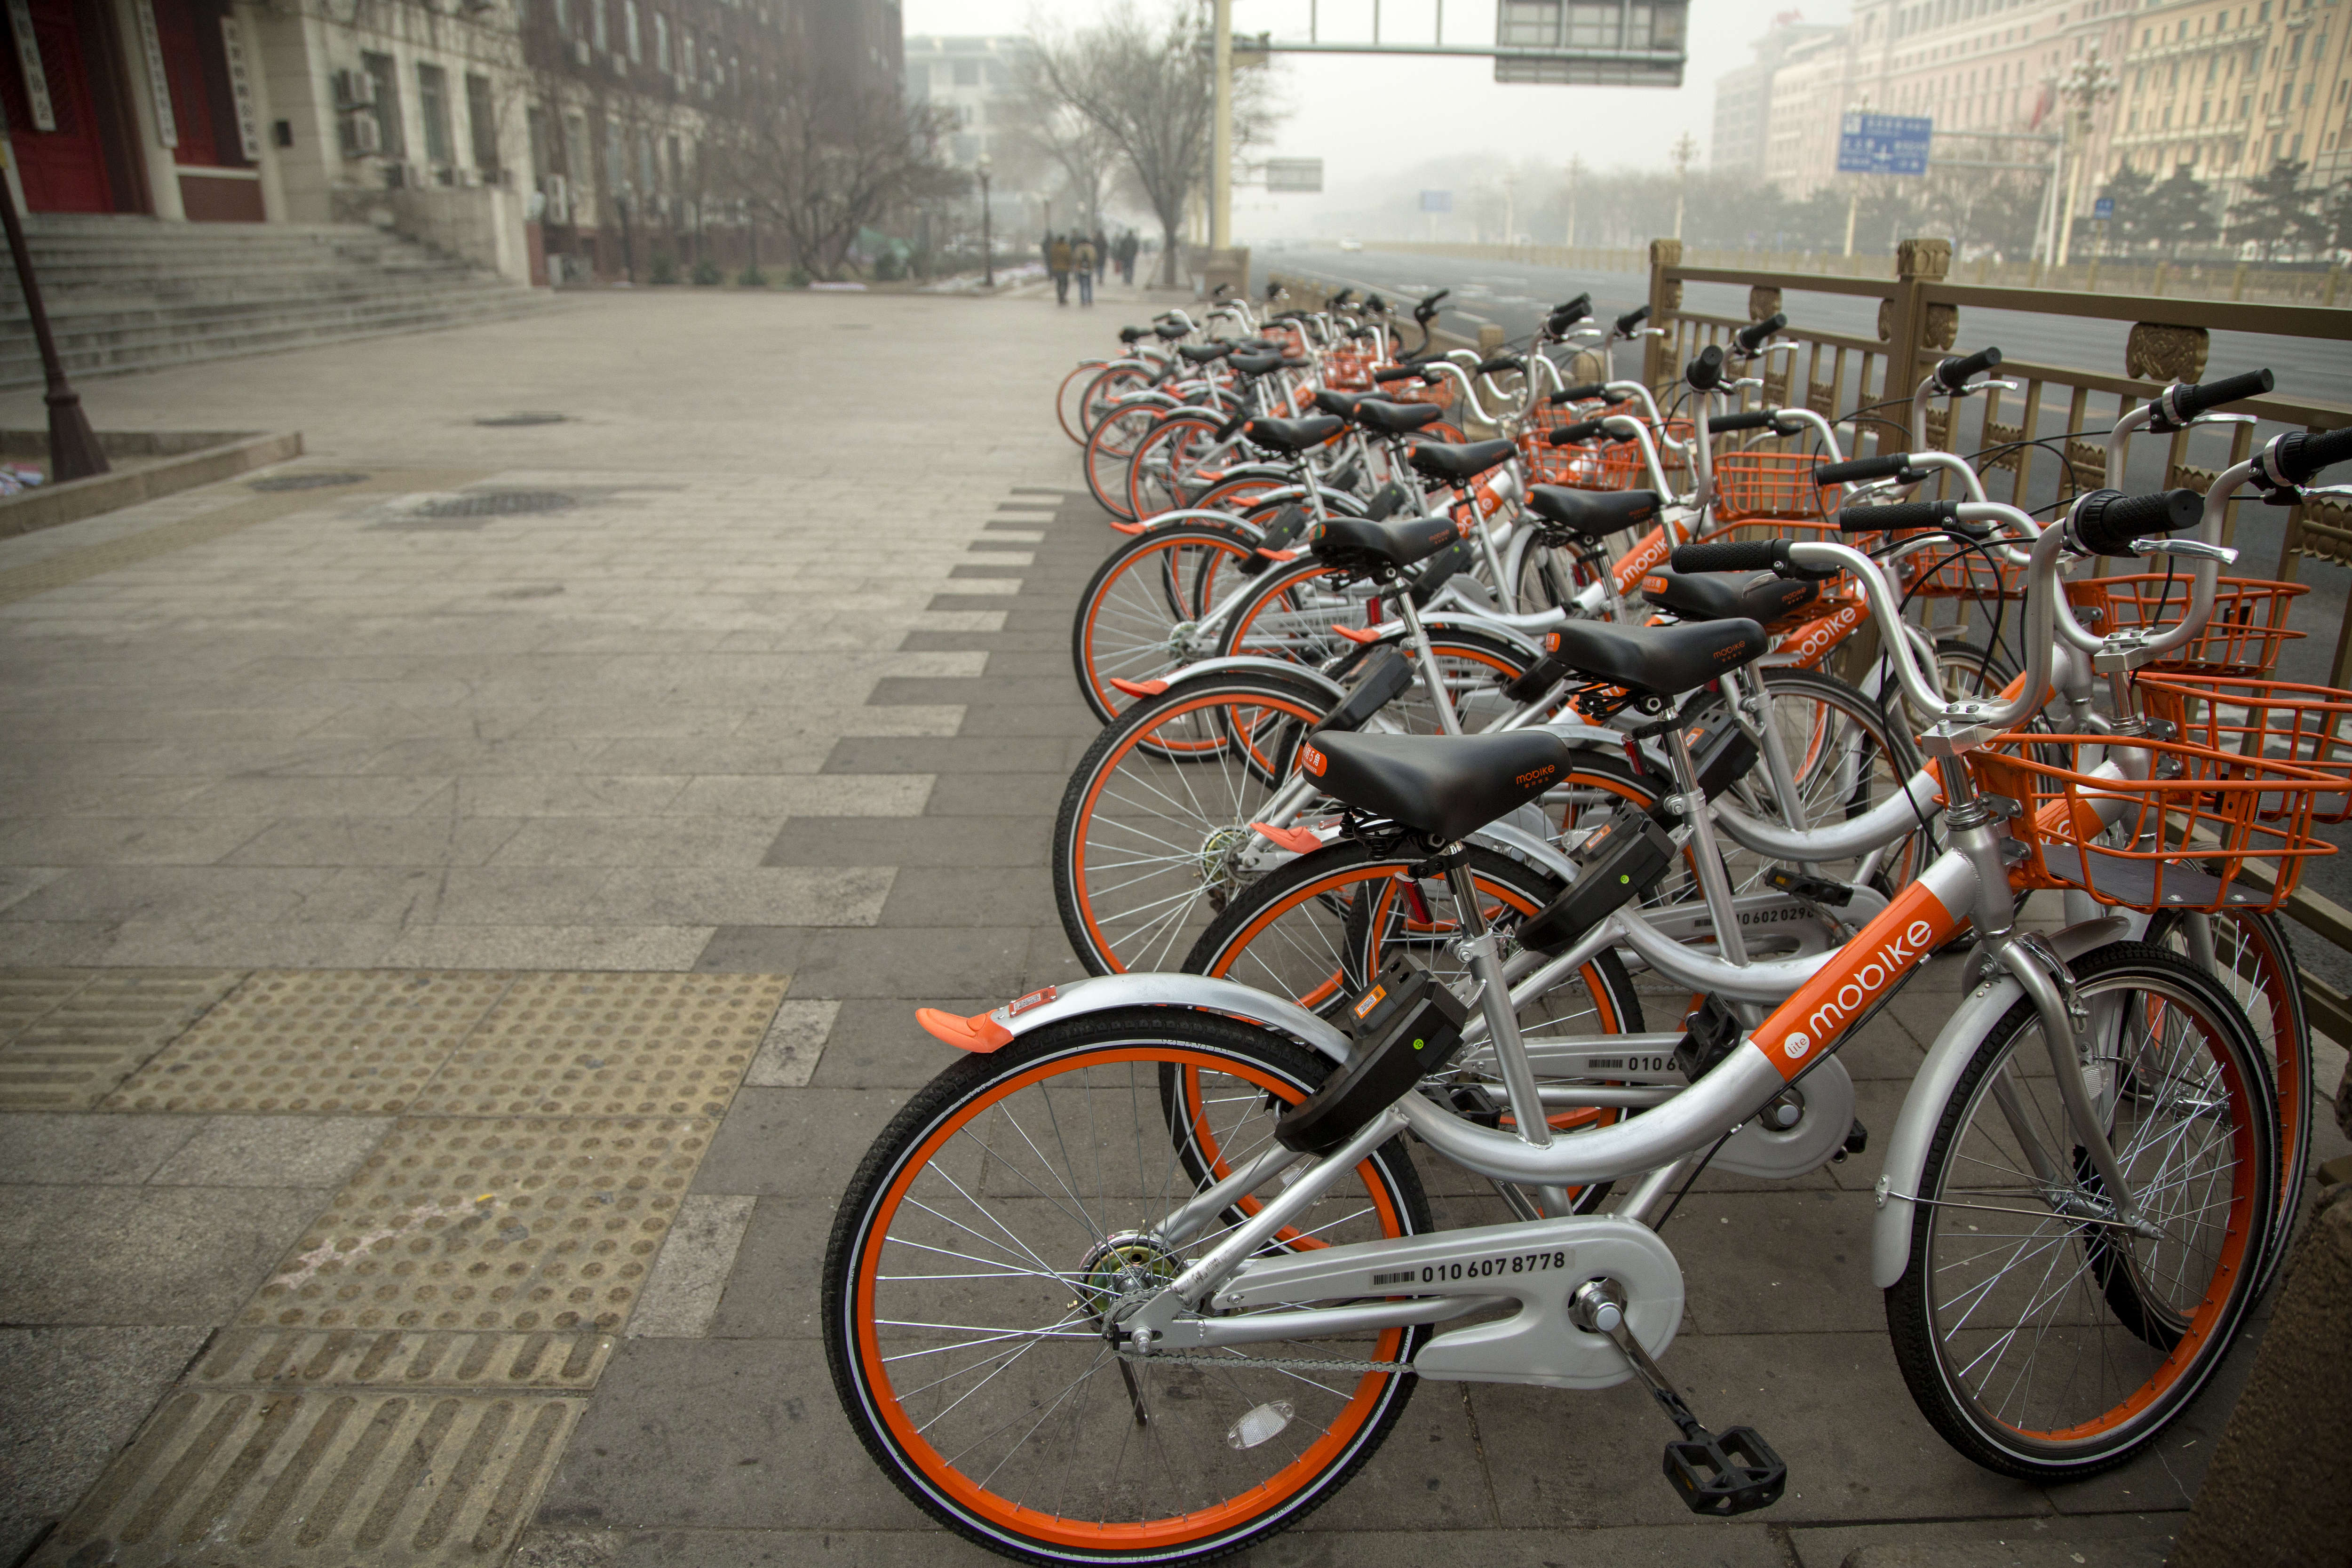 Mobikes bikes lined up on the streets.  Mobike is one of